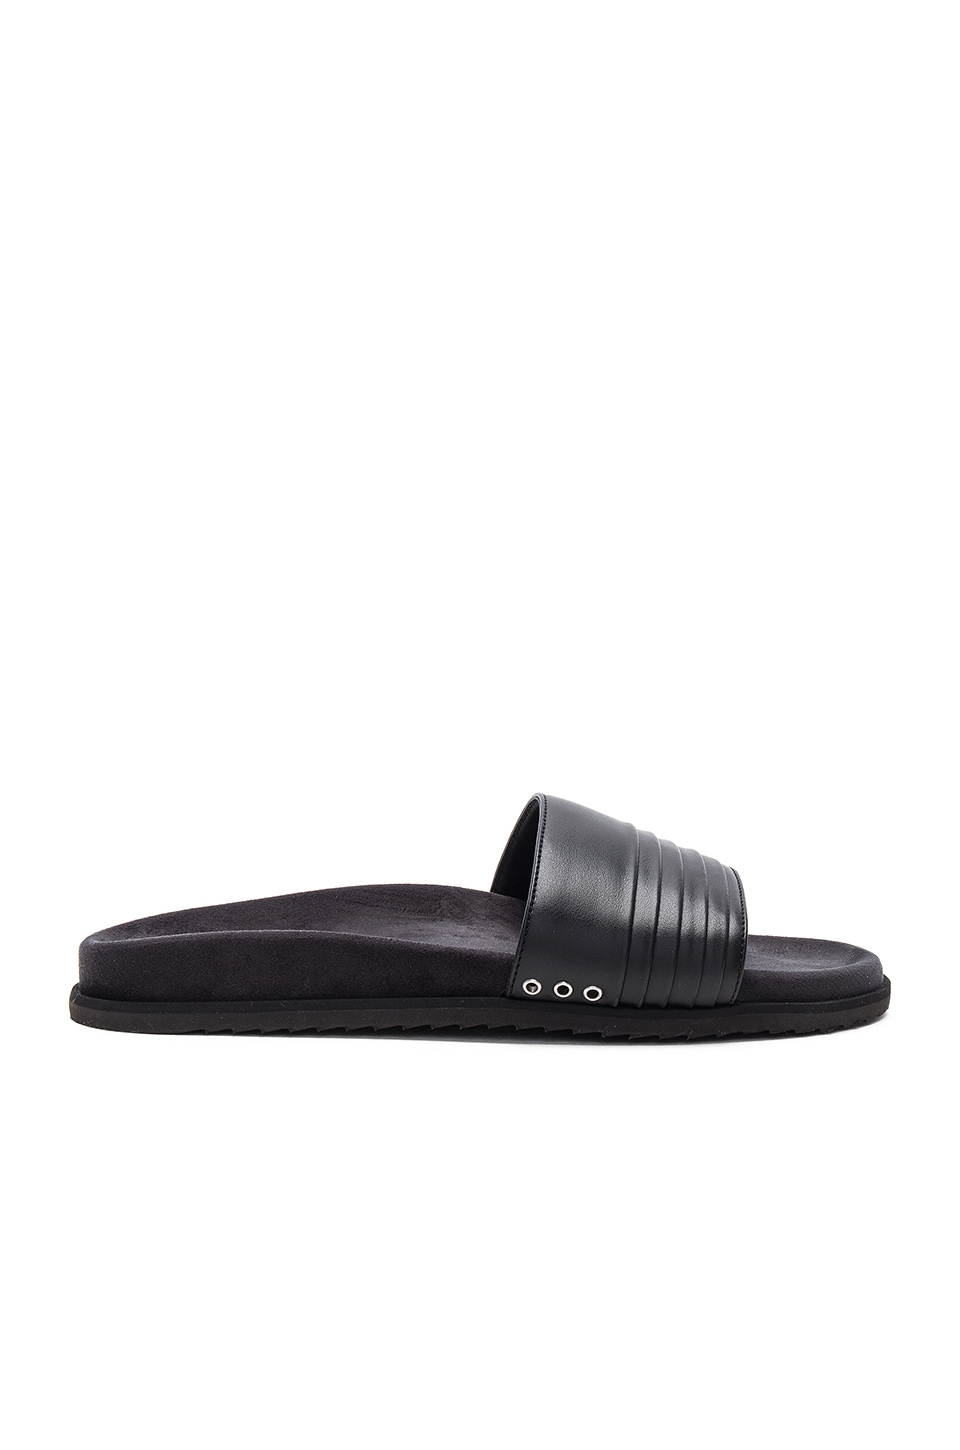 JOHN ELLIOTT Sandal in Black